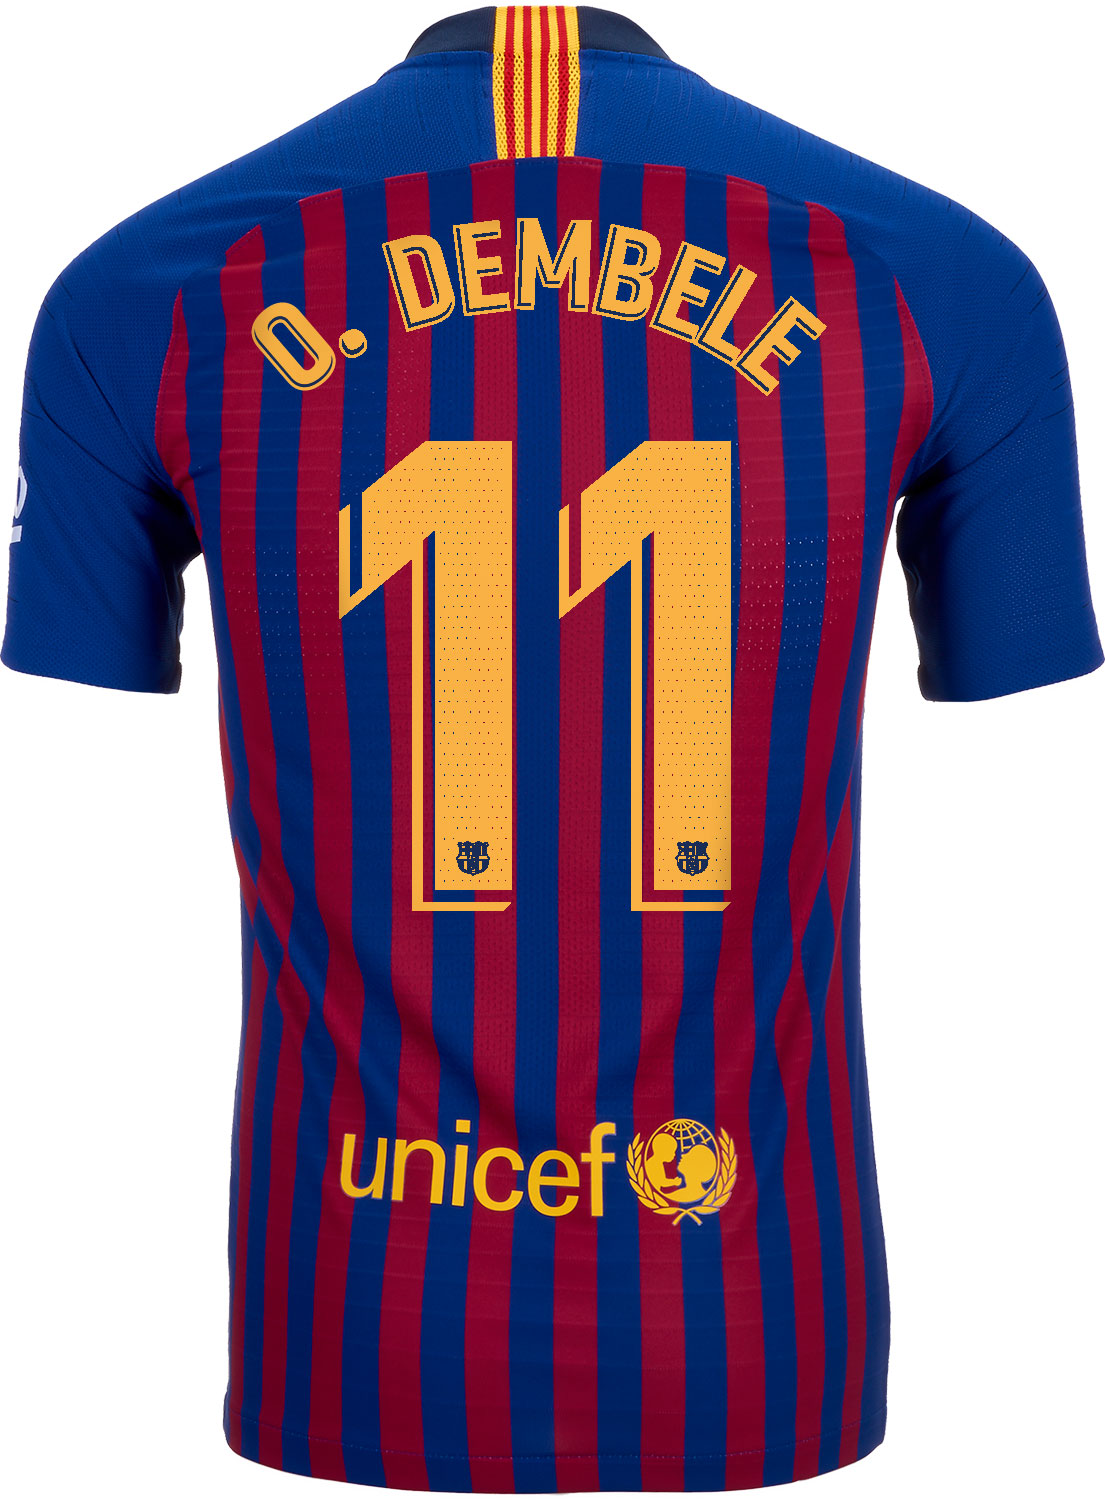 finest selection bed46 926ff 2018/19 Nike Ousmane Dembele Barcelona Home Match Jersey ...